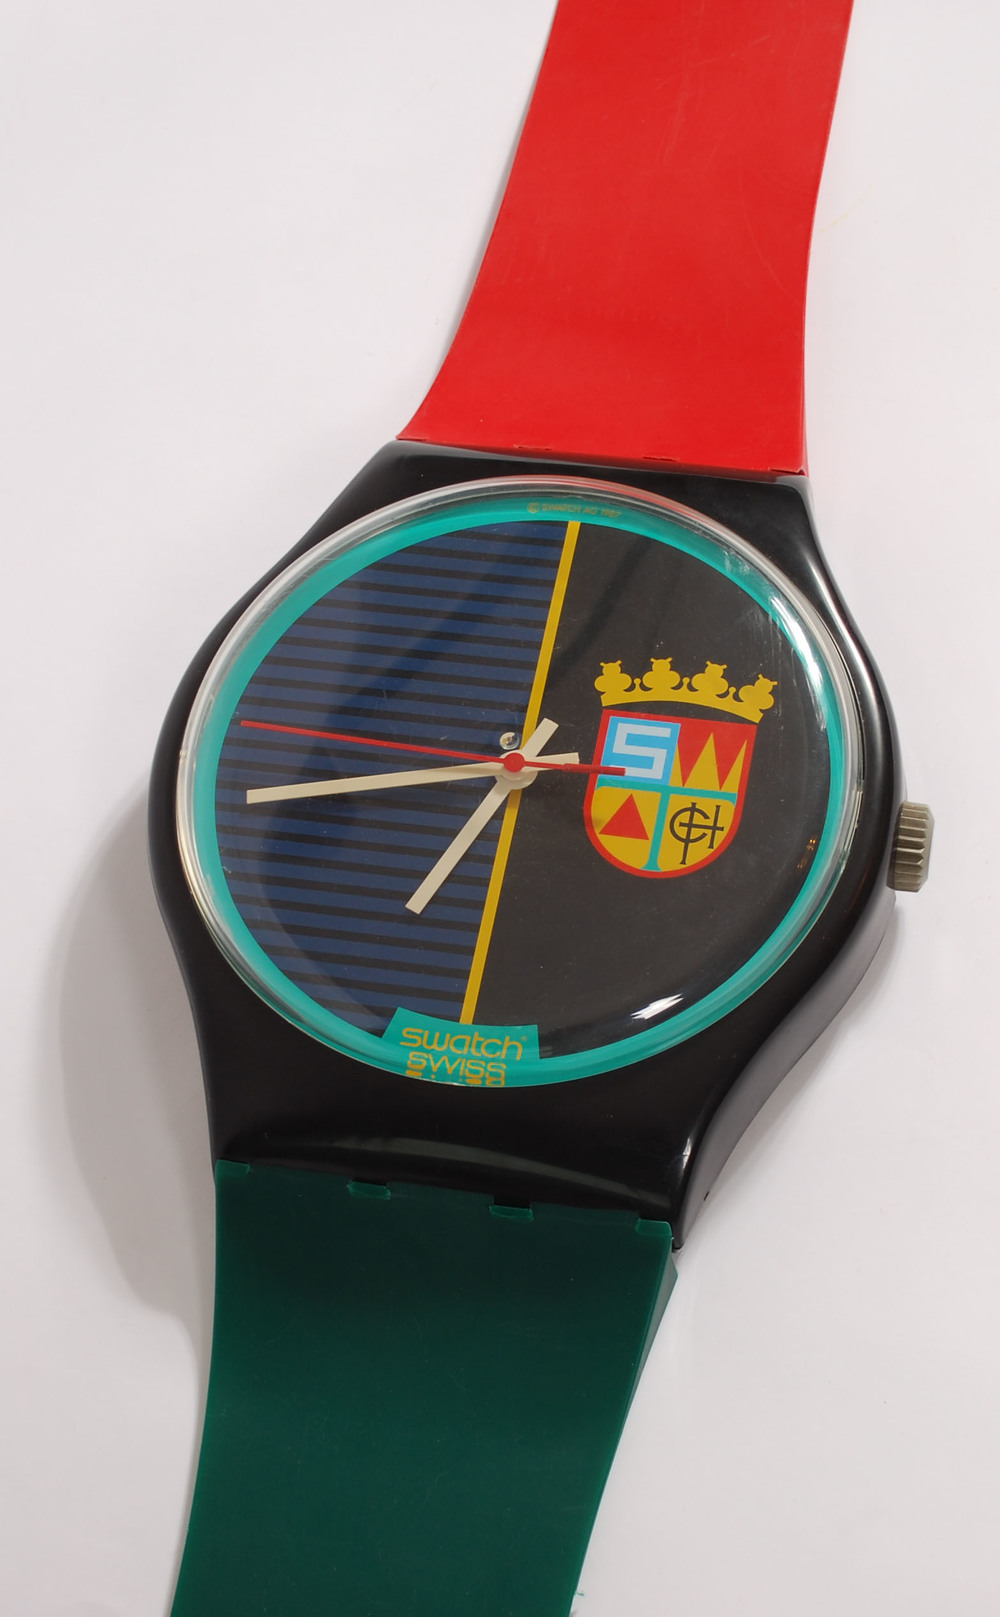 "Maxi Swatch wall clock, 1987 ""Sir Swatch"" MGB111  - AVAILABLE"